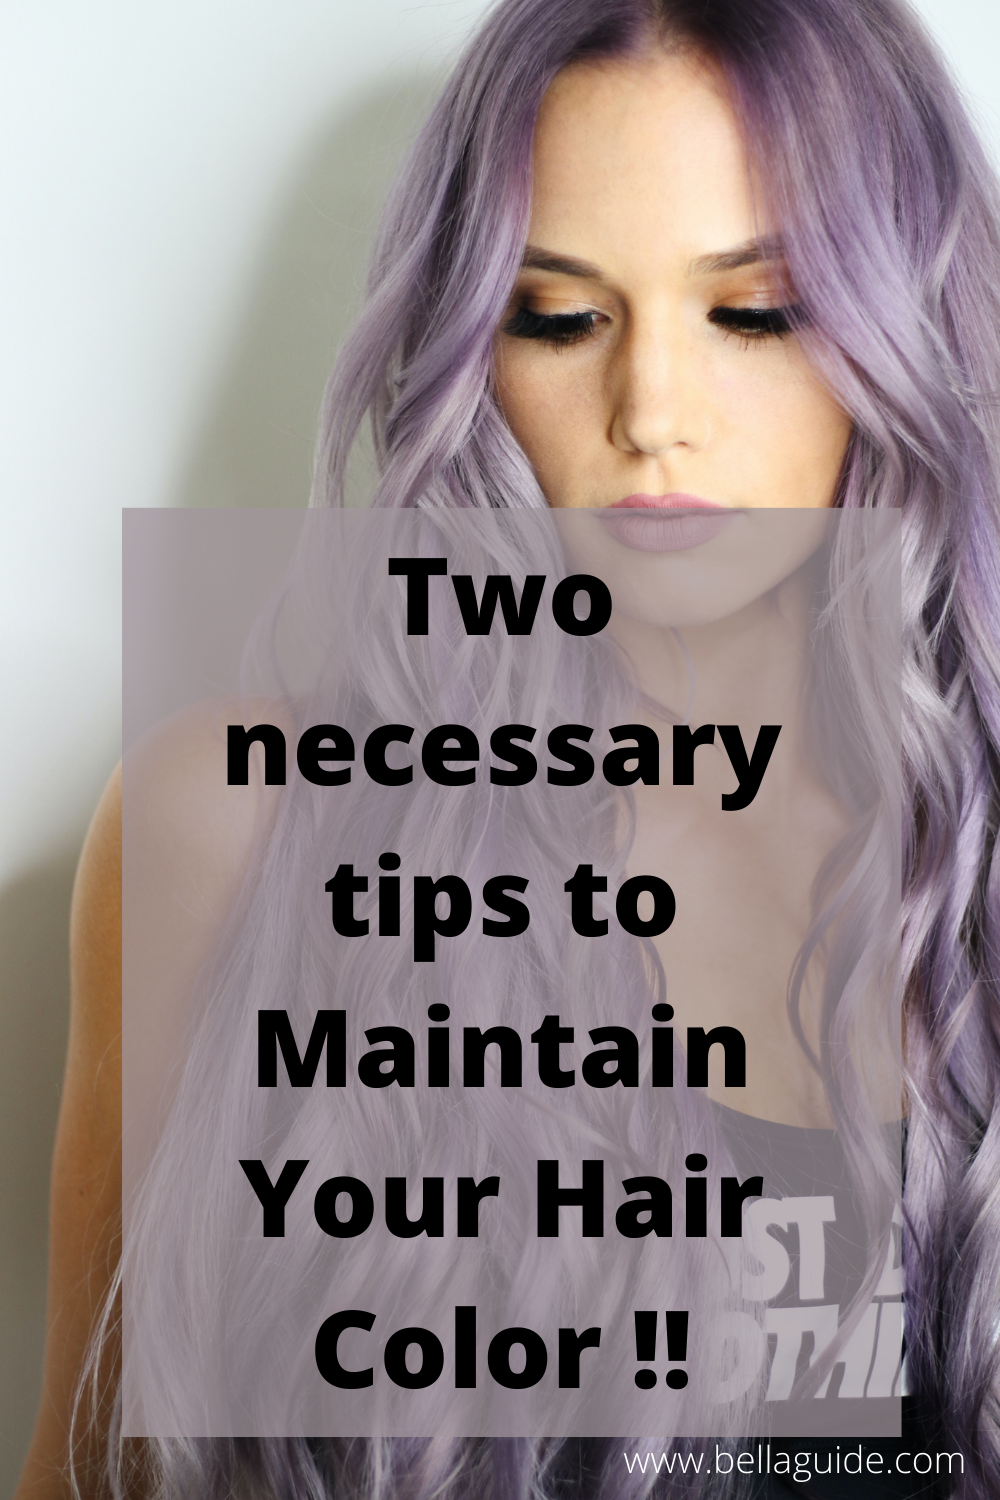 Two necessary tips to Maintain Your Hair Color !!